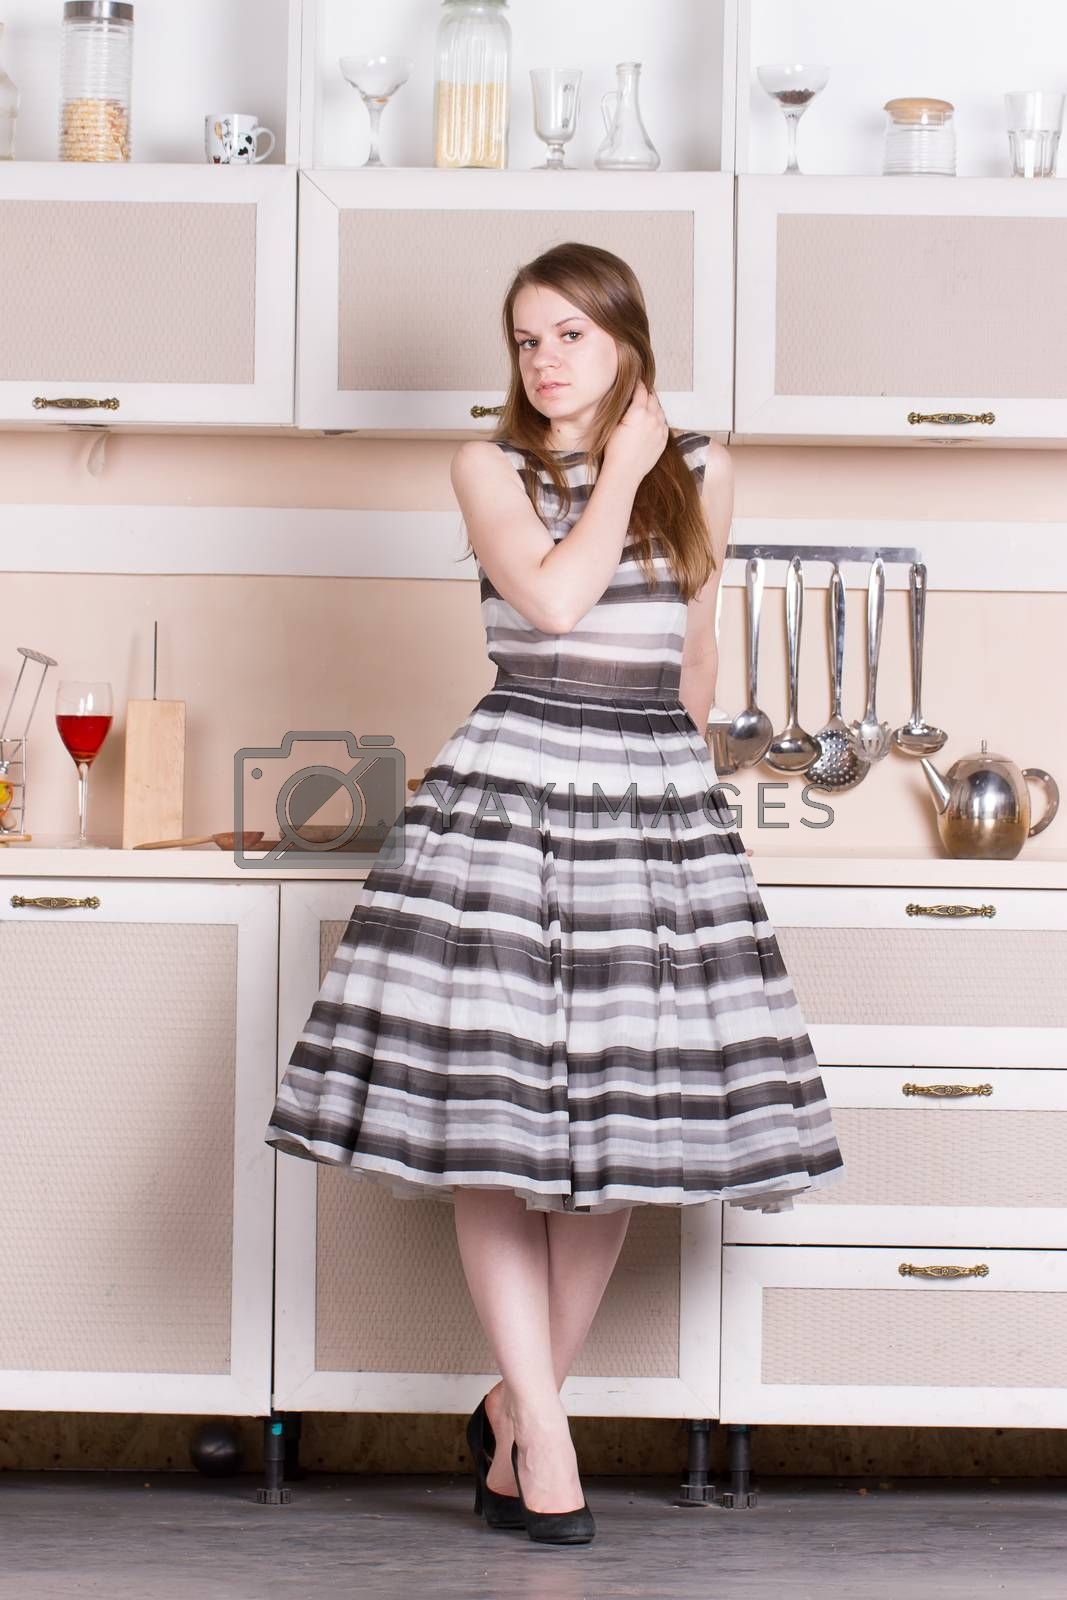 funny beautiful woman in kitchen by victosha